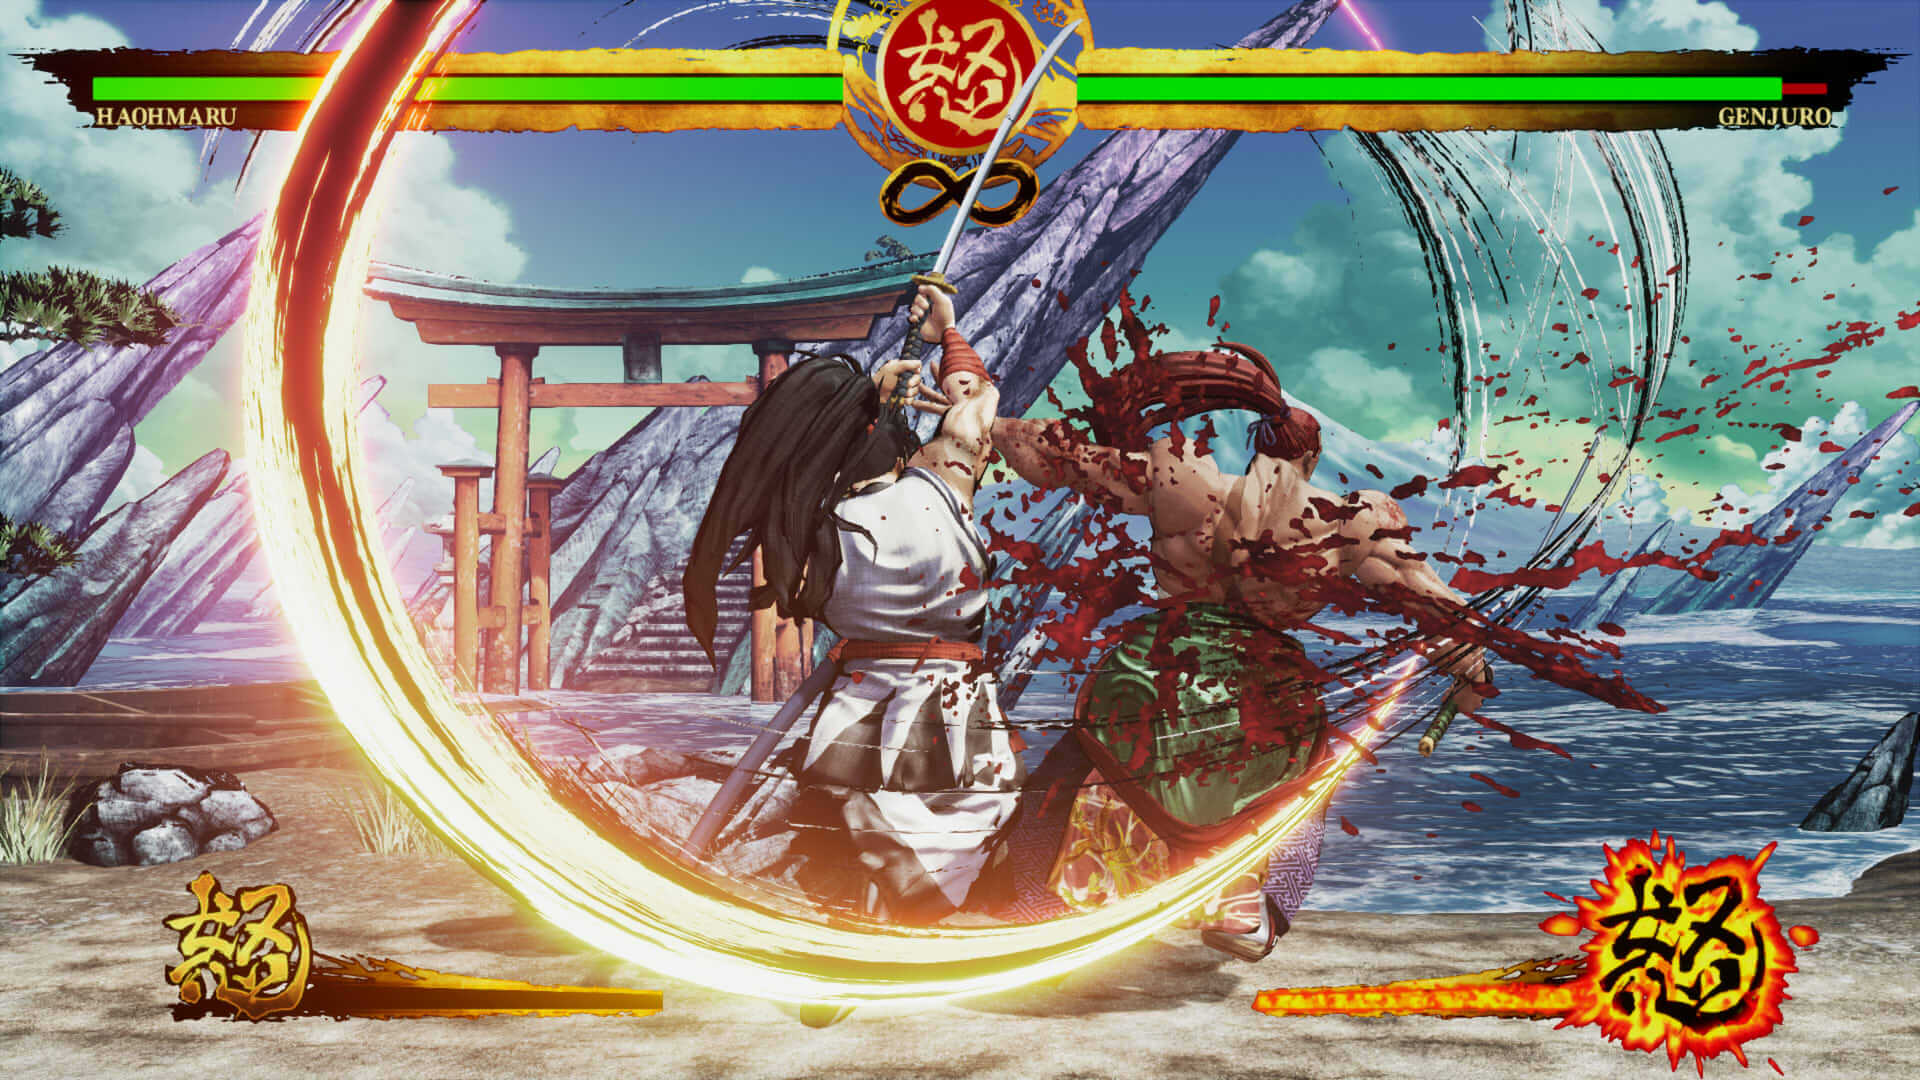 turn v-sync on in Samurai Shodown